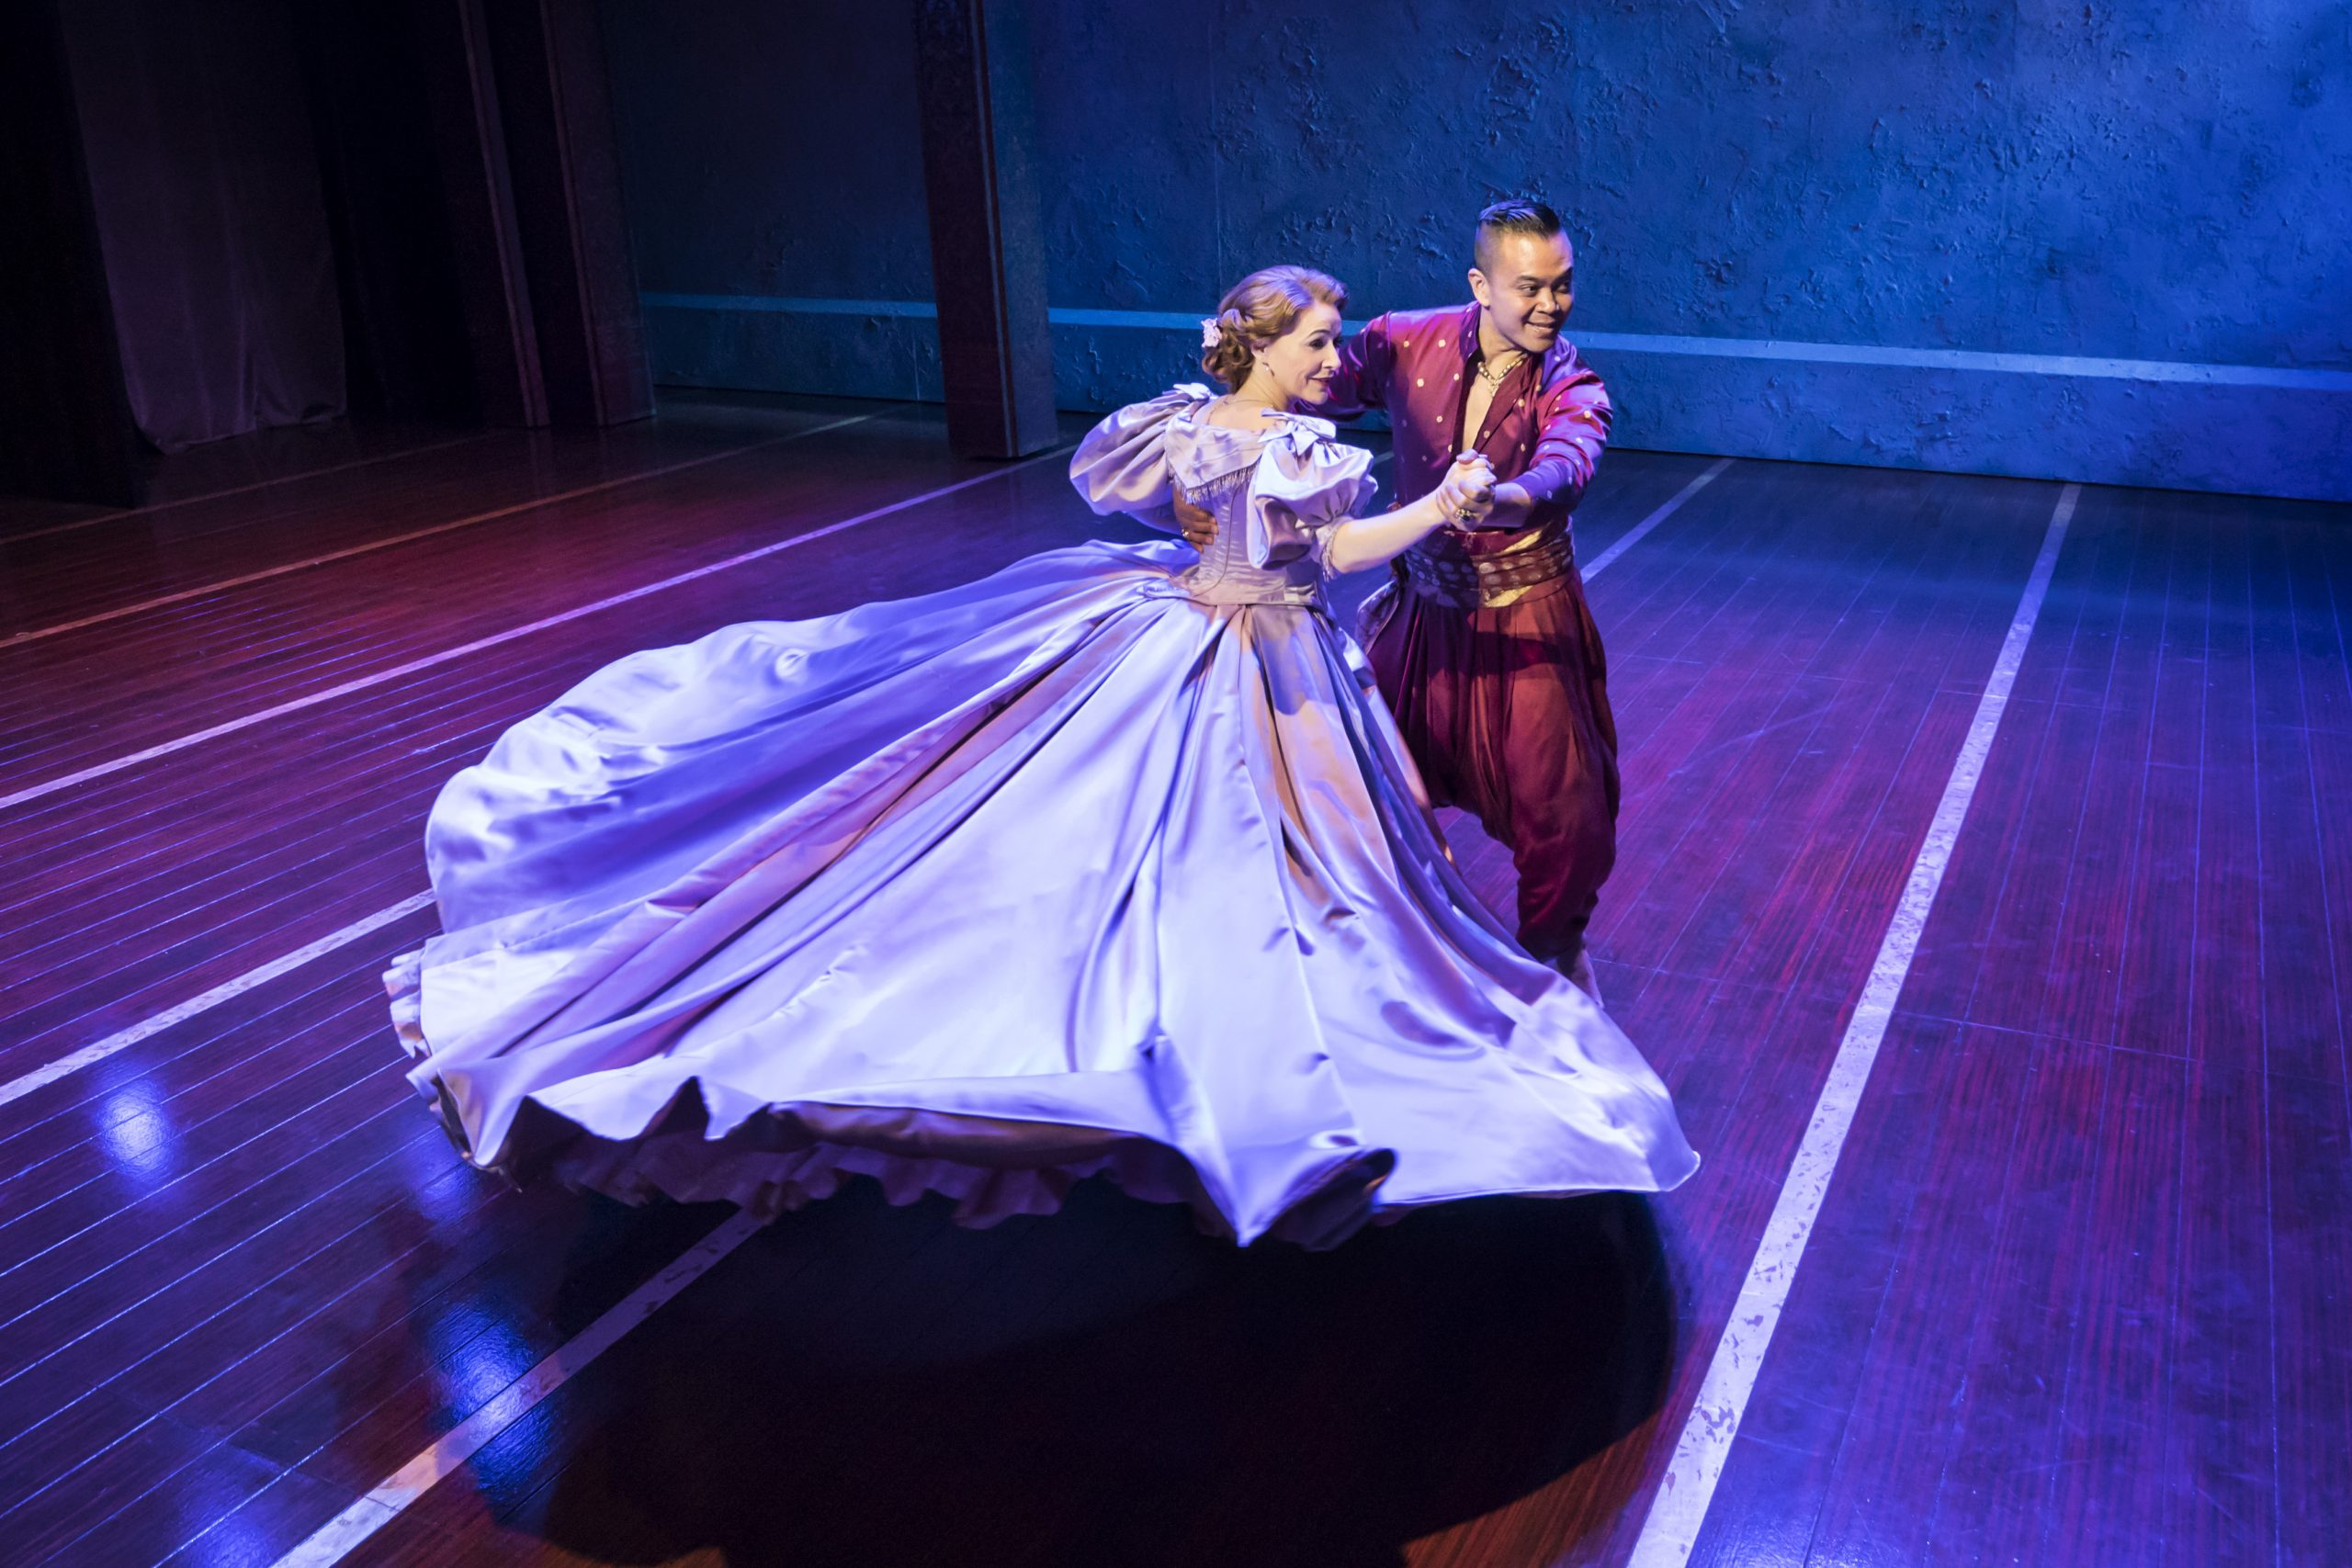 The King and I. Bartlett Sher's interpretation of Rodgers' & Hammerstein's classic. Anna and the King of Siam swirling across the stage during the 'Shall We Dance?' scene.